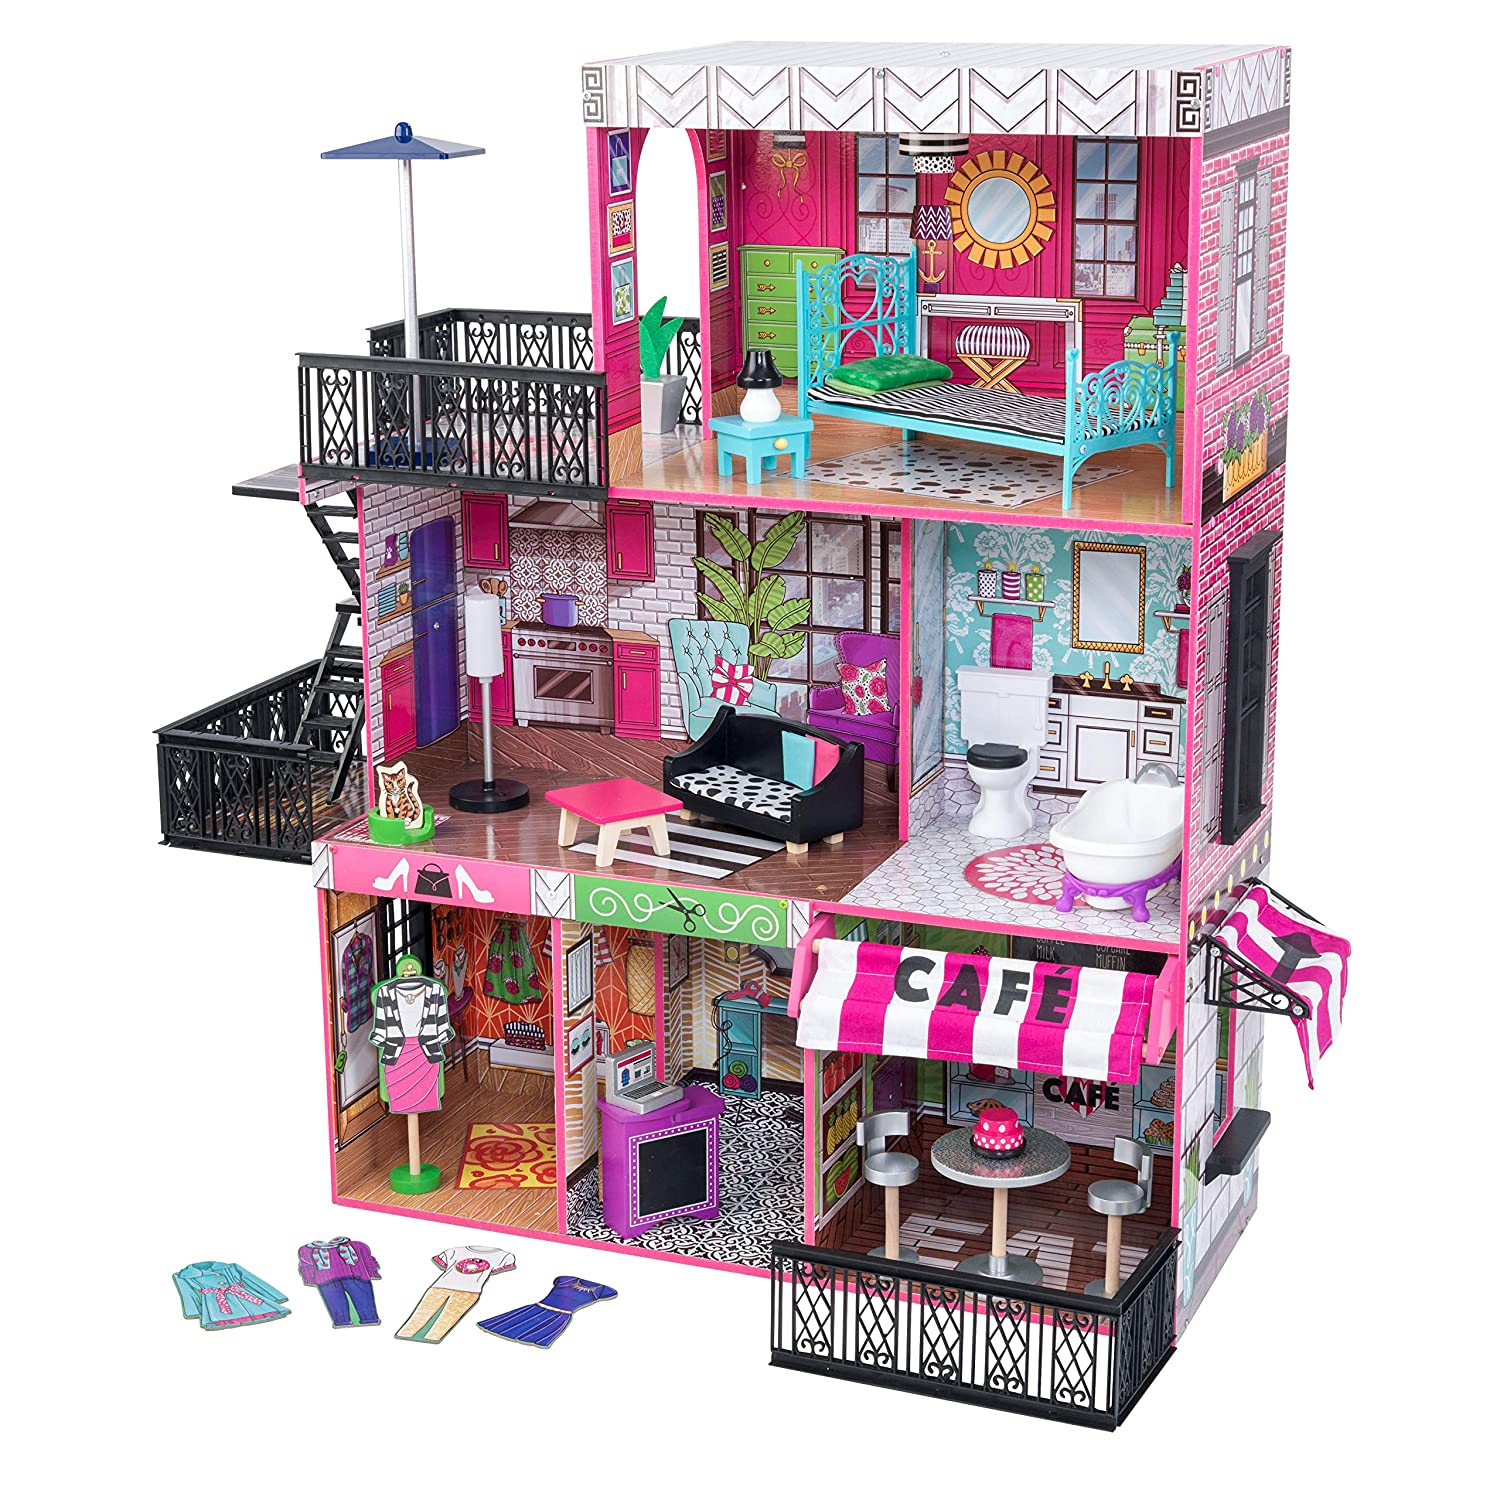 KidKraft Brooklyn's Loft Doll House